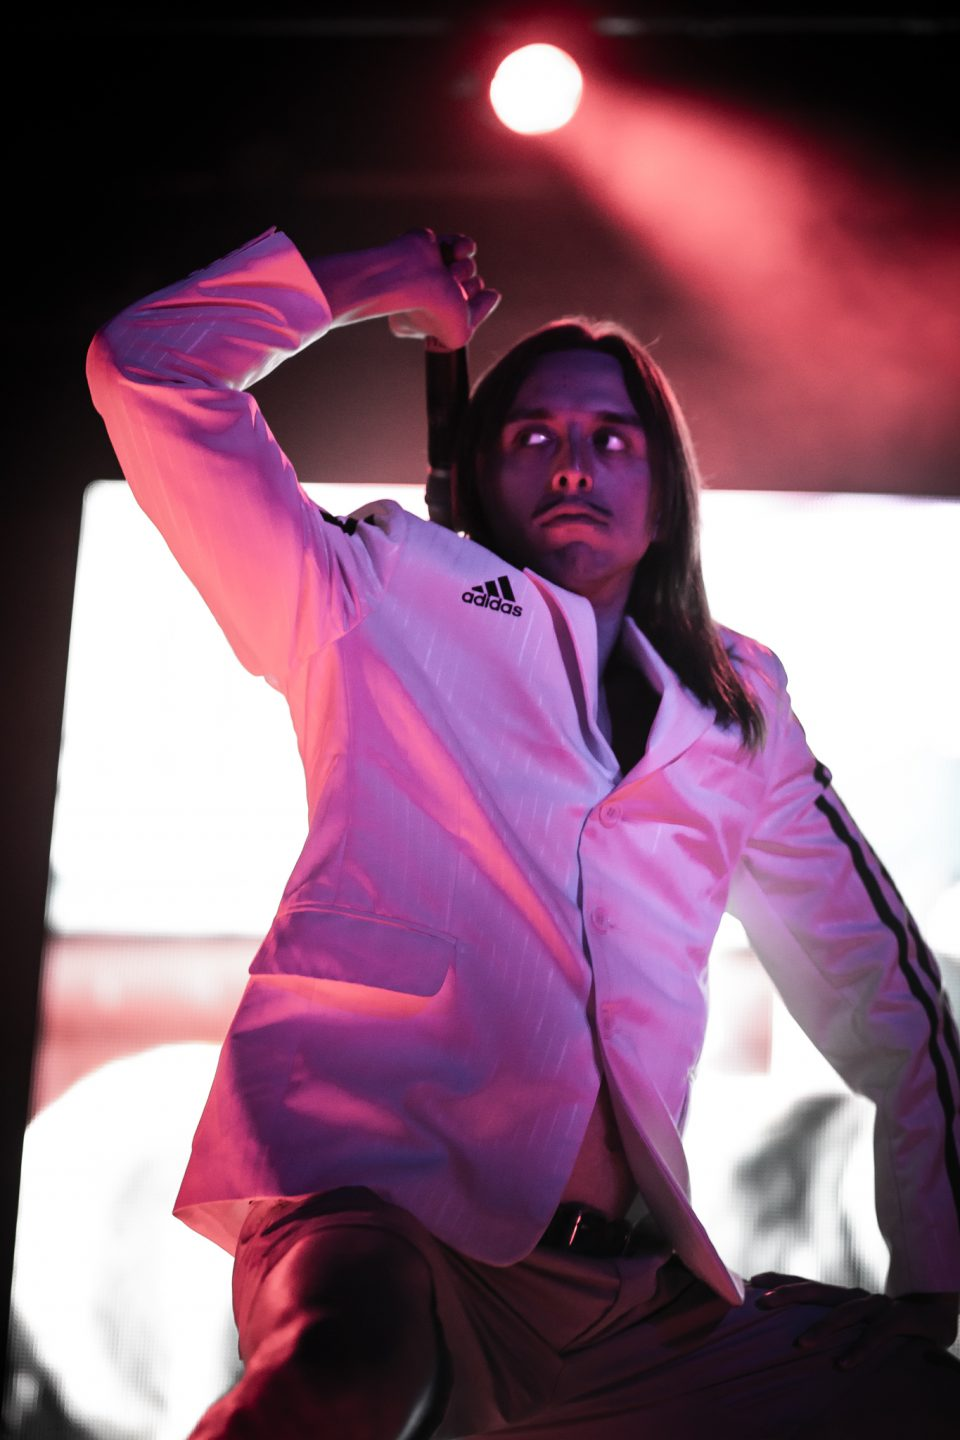 Tommy Cash at Concord Music Hall by Liina Raud Photography